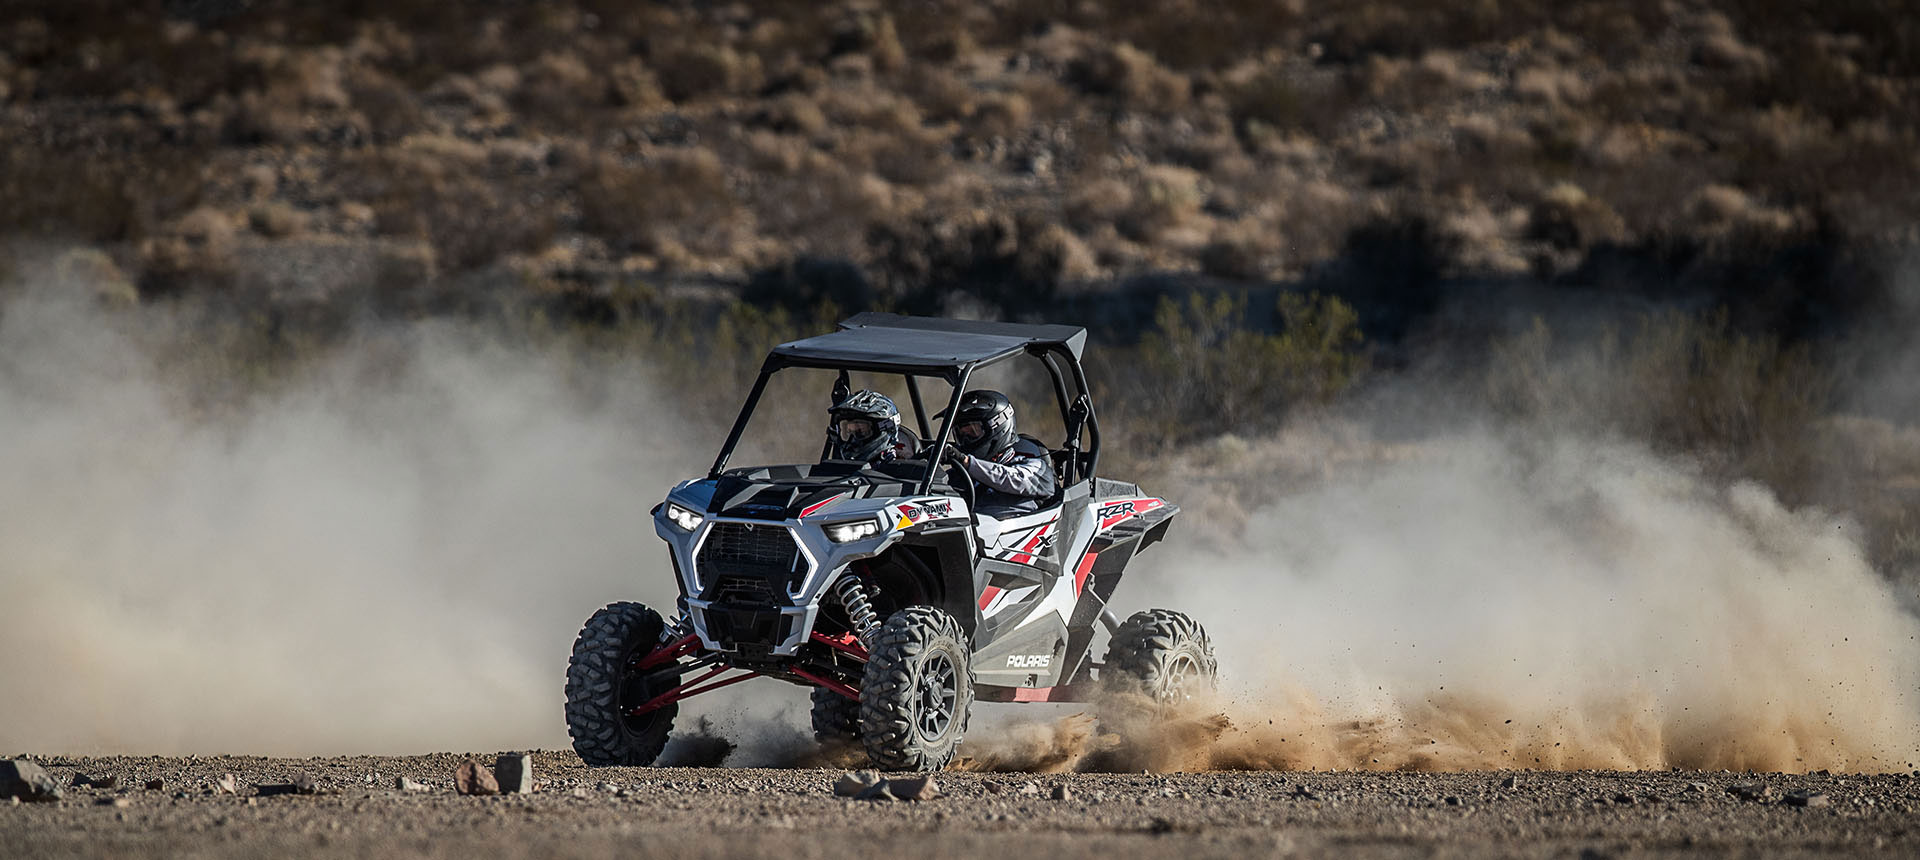 2019 Polaris RZR XP 1000 in Freeport, Florida - Photo 7